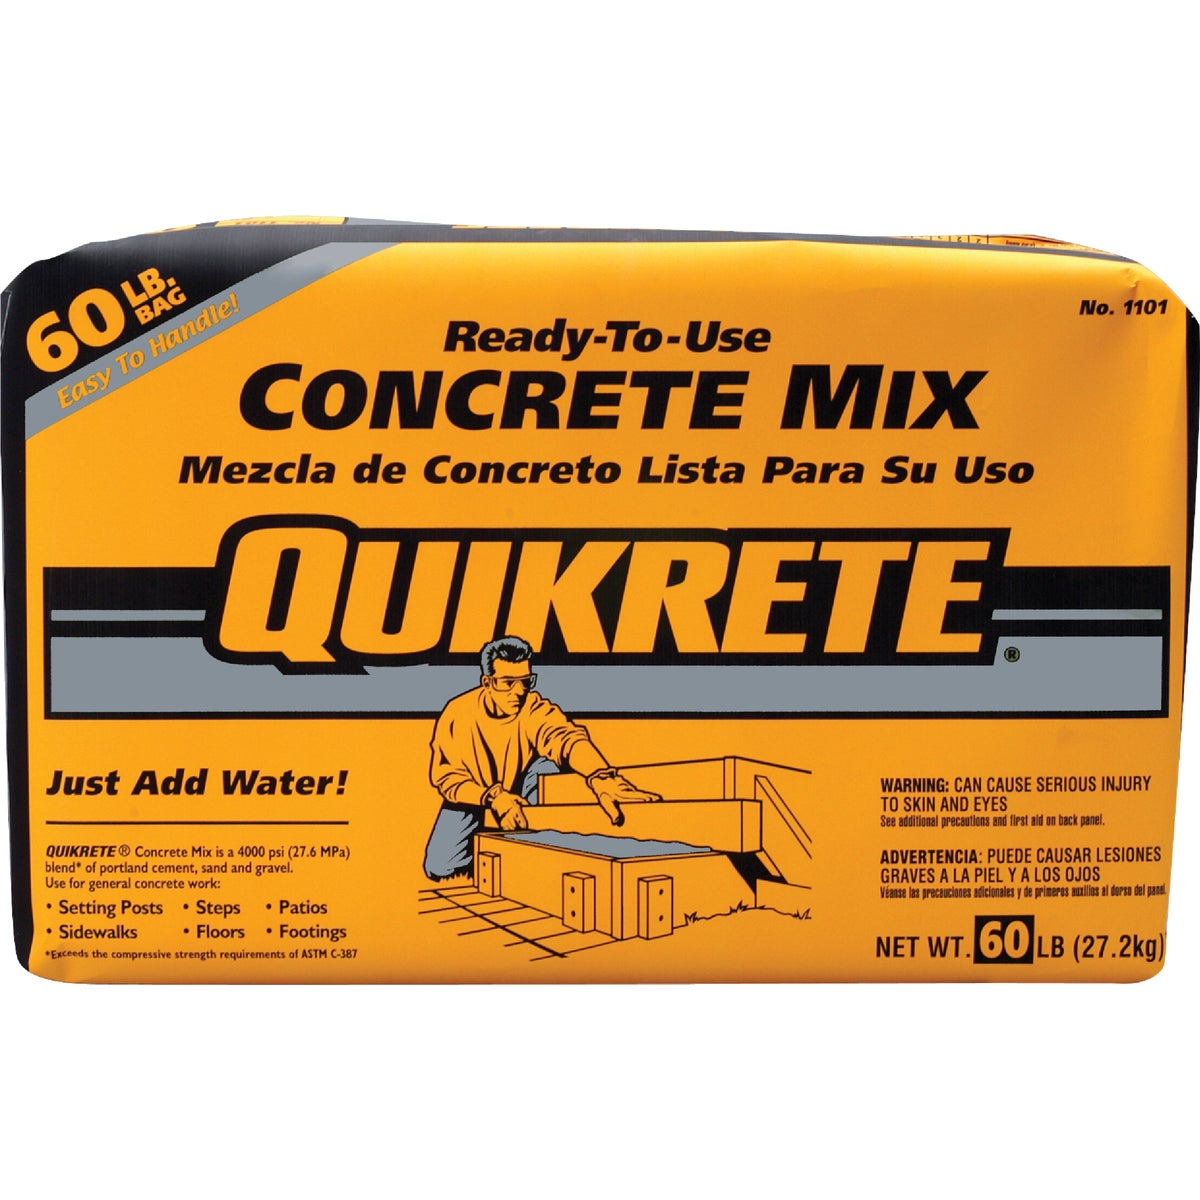 Quikrete 60LB CONCRETE MIX 110160